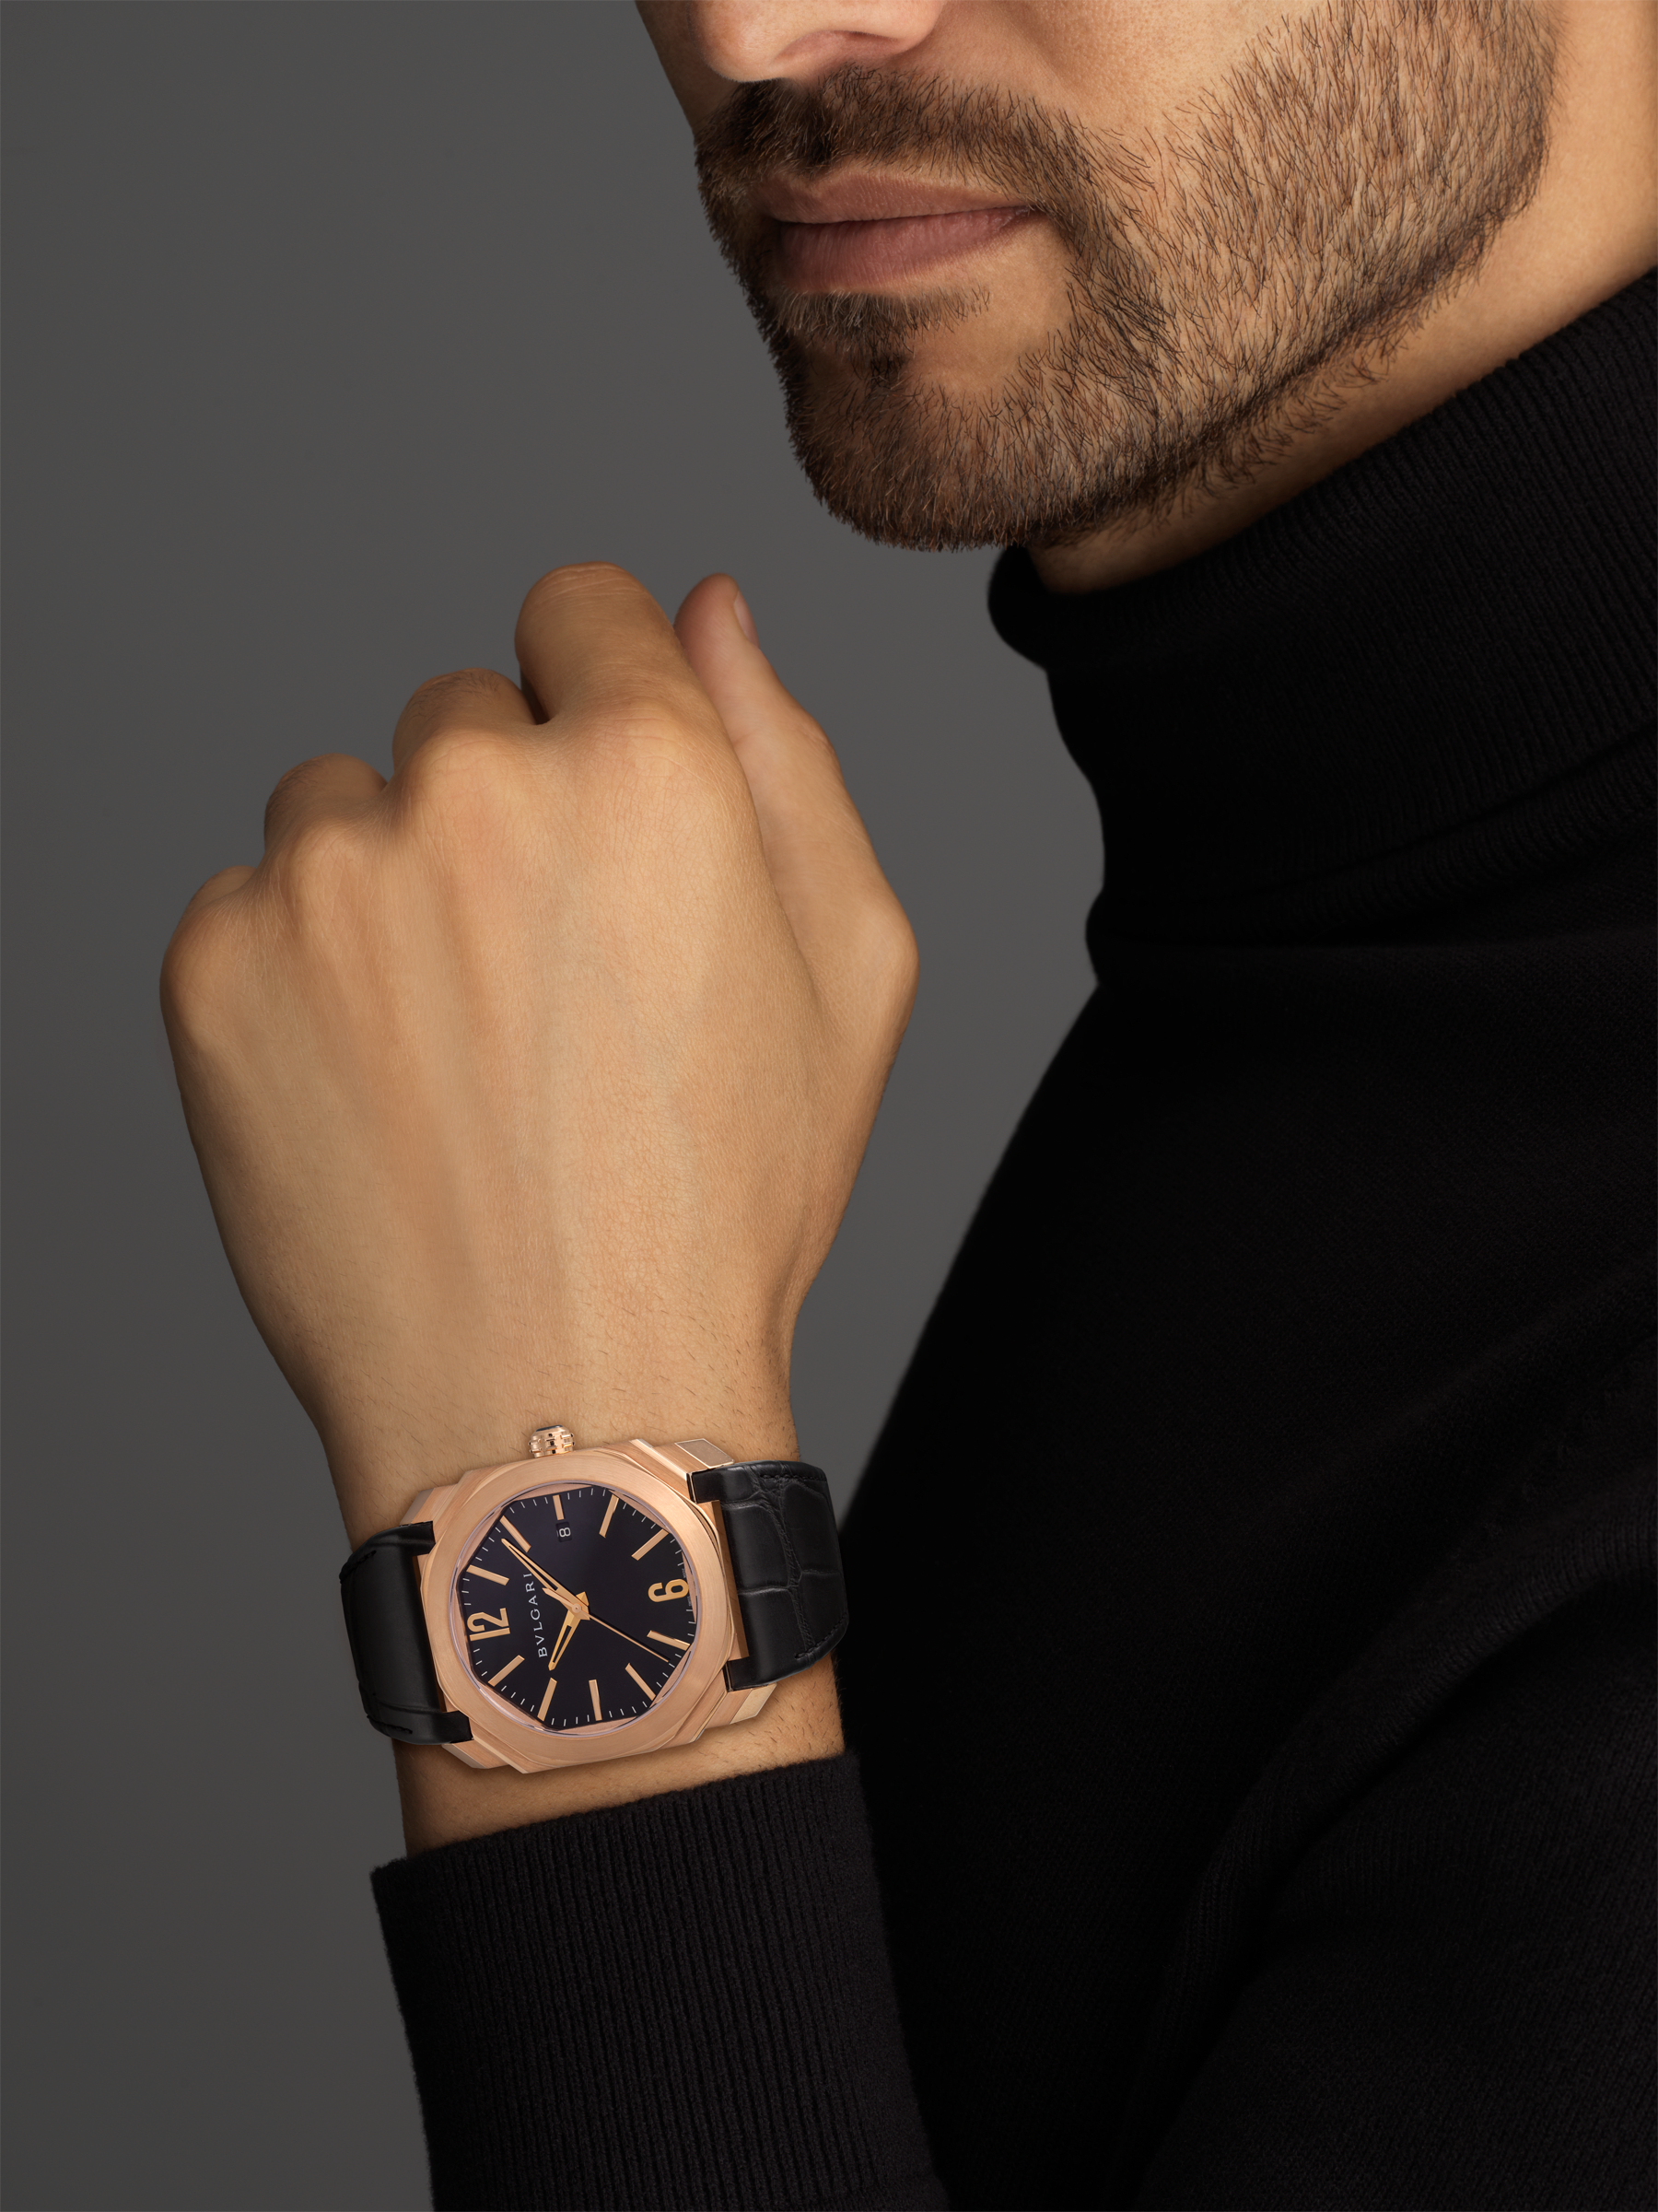 Octo watch with mechanical manufacture movement, automatic winding and date, 18 kt rose gold case, black lacquered dial and black alligator bracelet. 101963 image 3